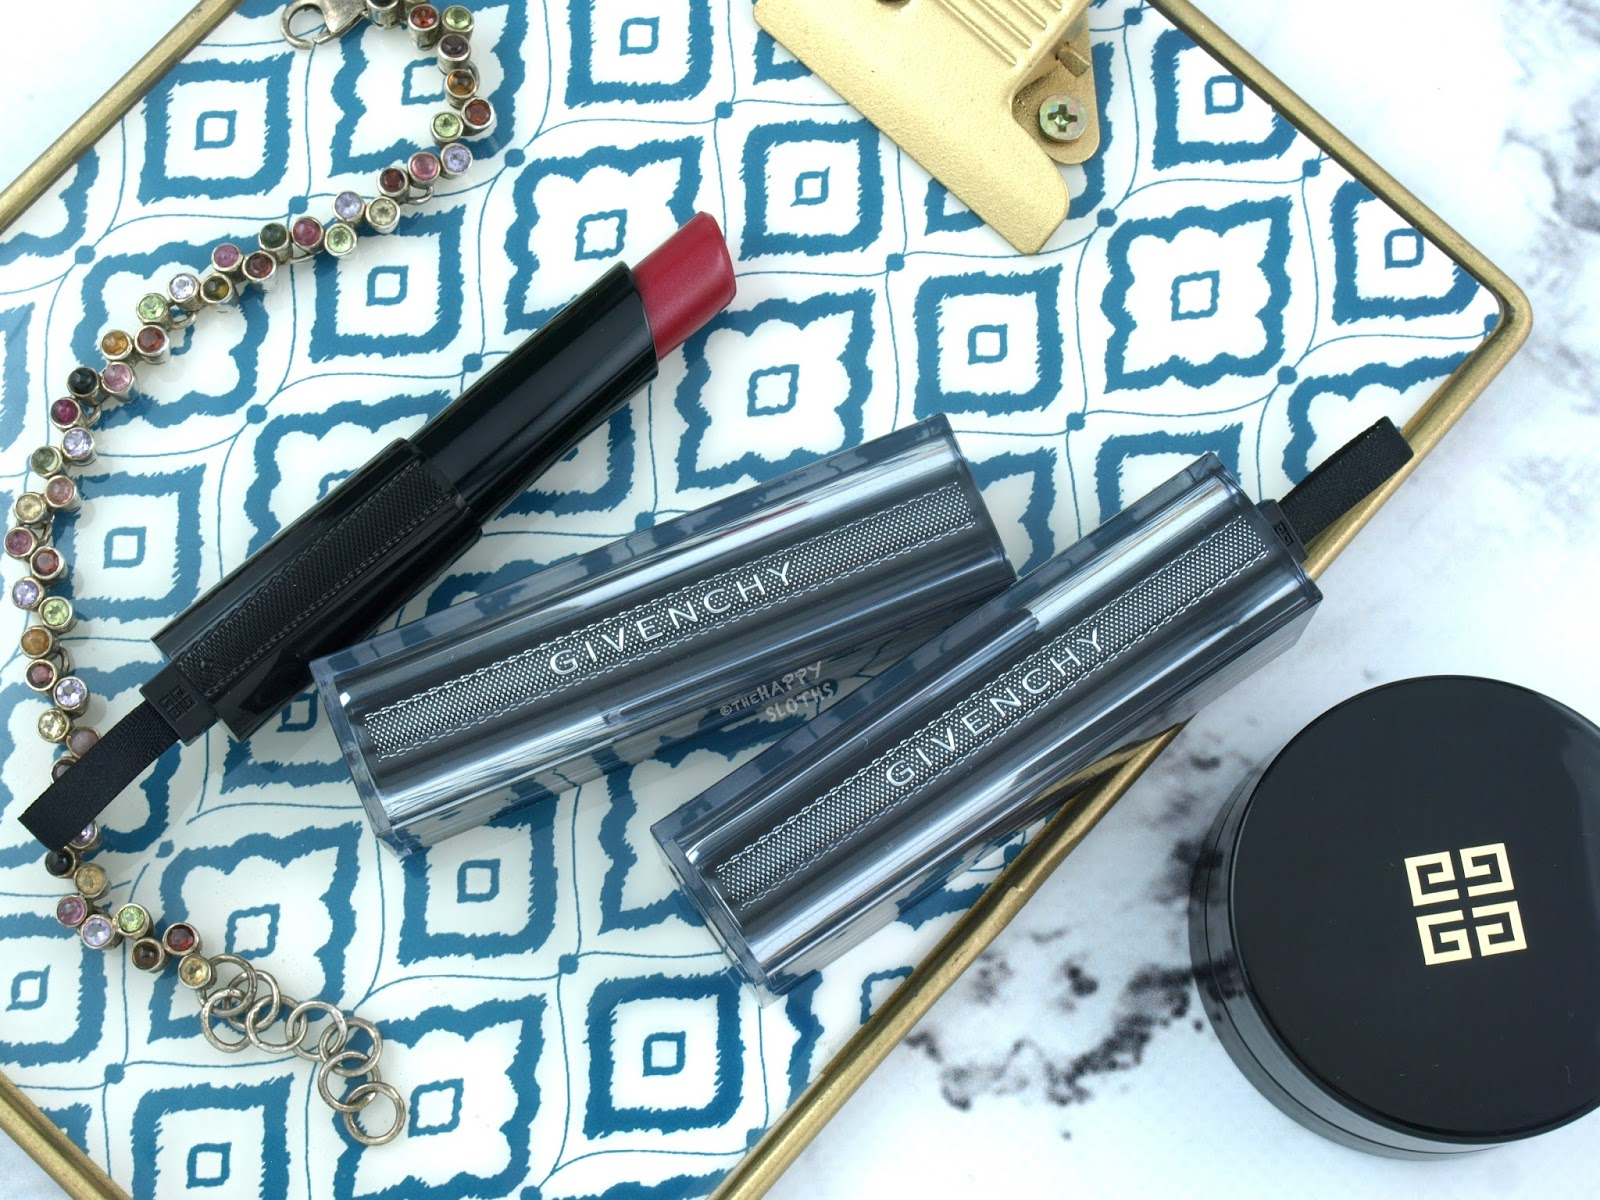 Givenchy | Les Saisons 2018 Rouge Interdit Vinyl Lipsticks: Review and Swatches